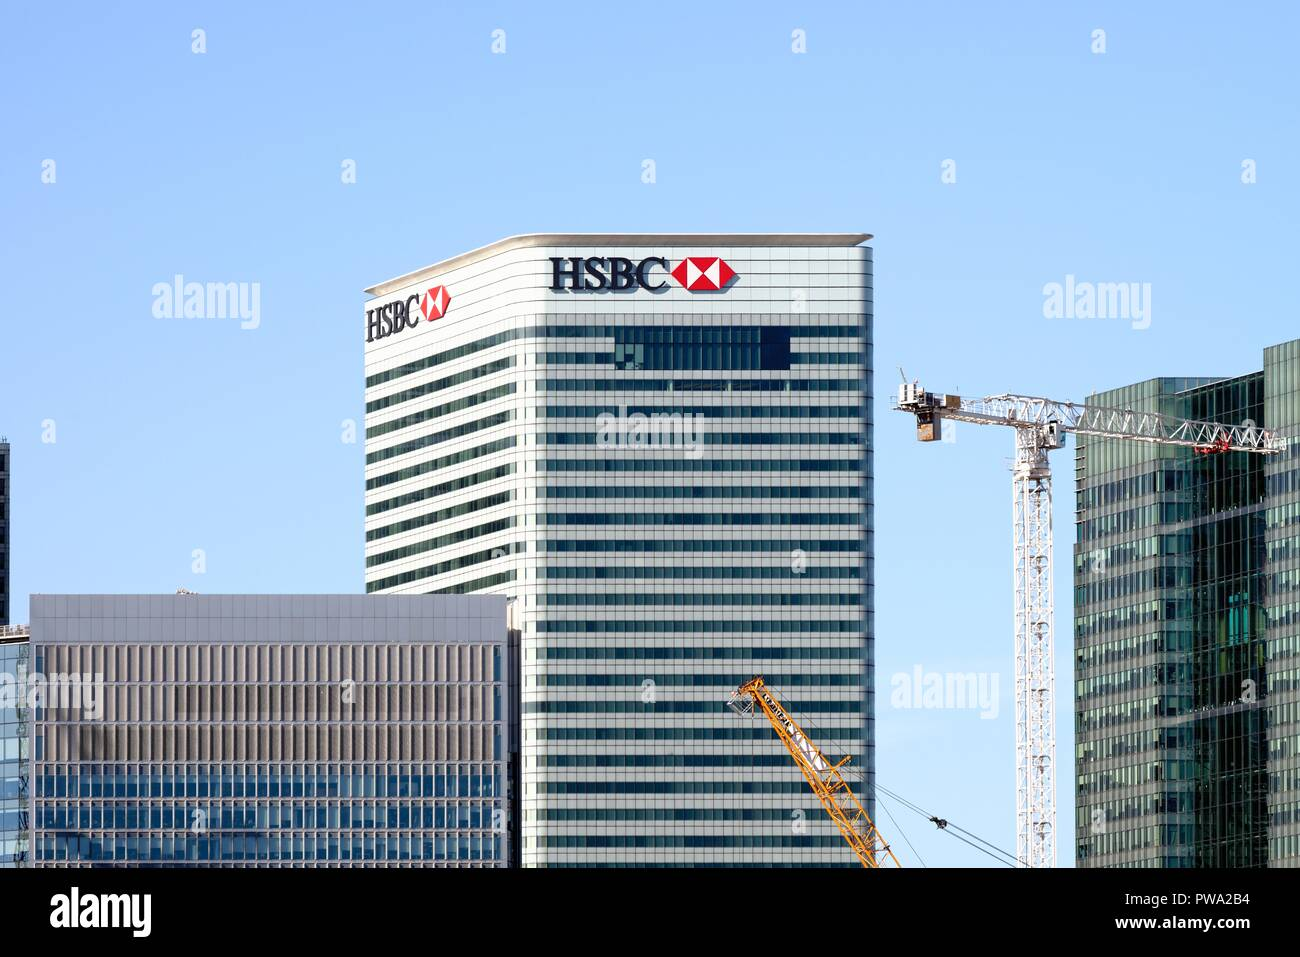 The headquarters of the HSBC Bank at Canary Wharf Docklands London England UK - Stock Image